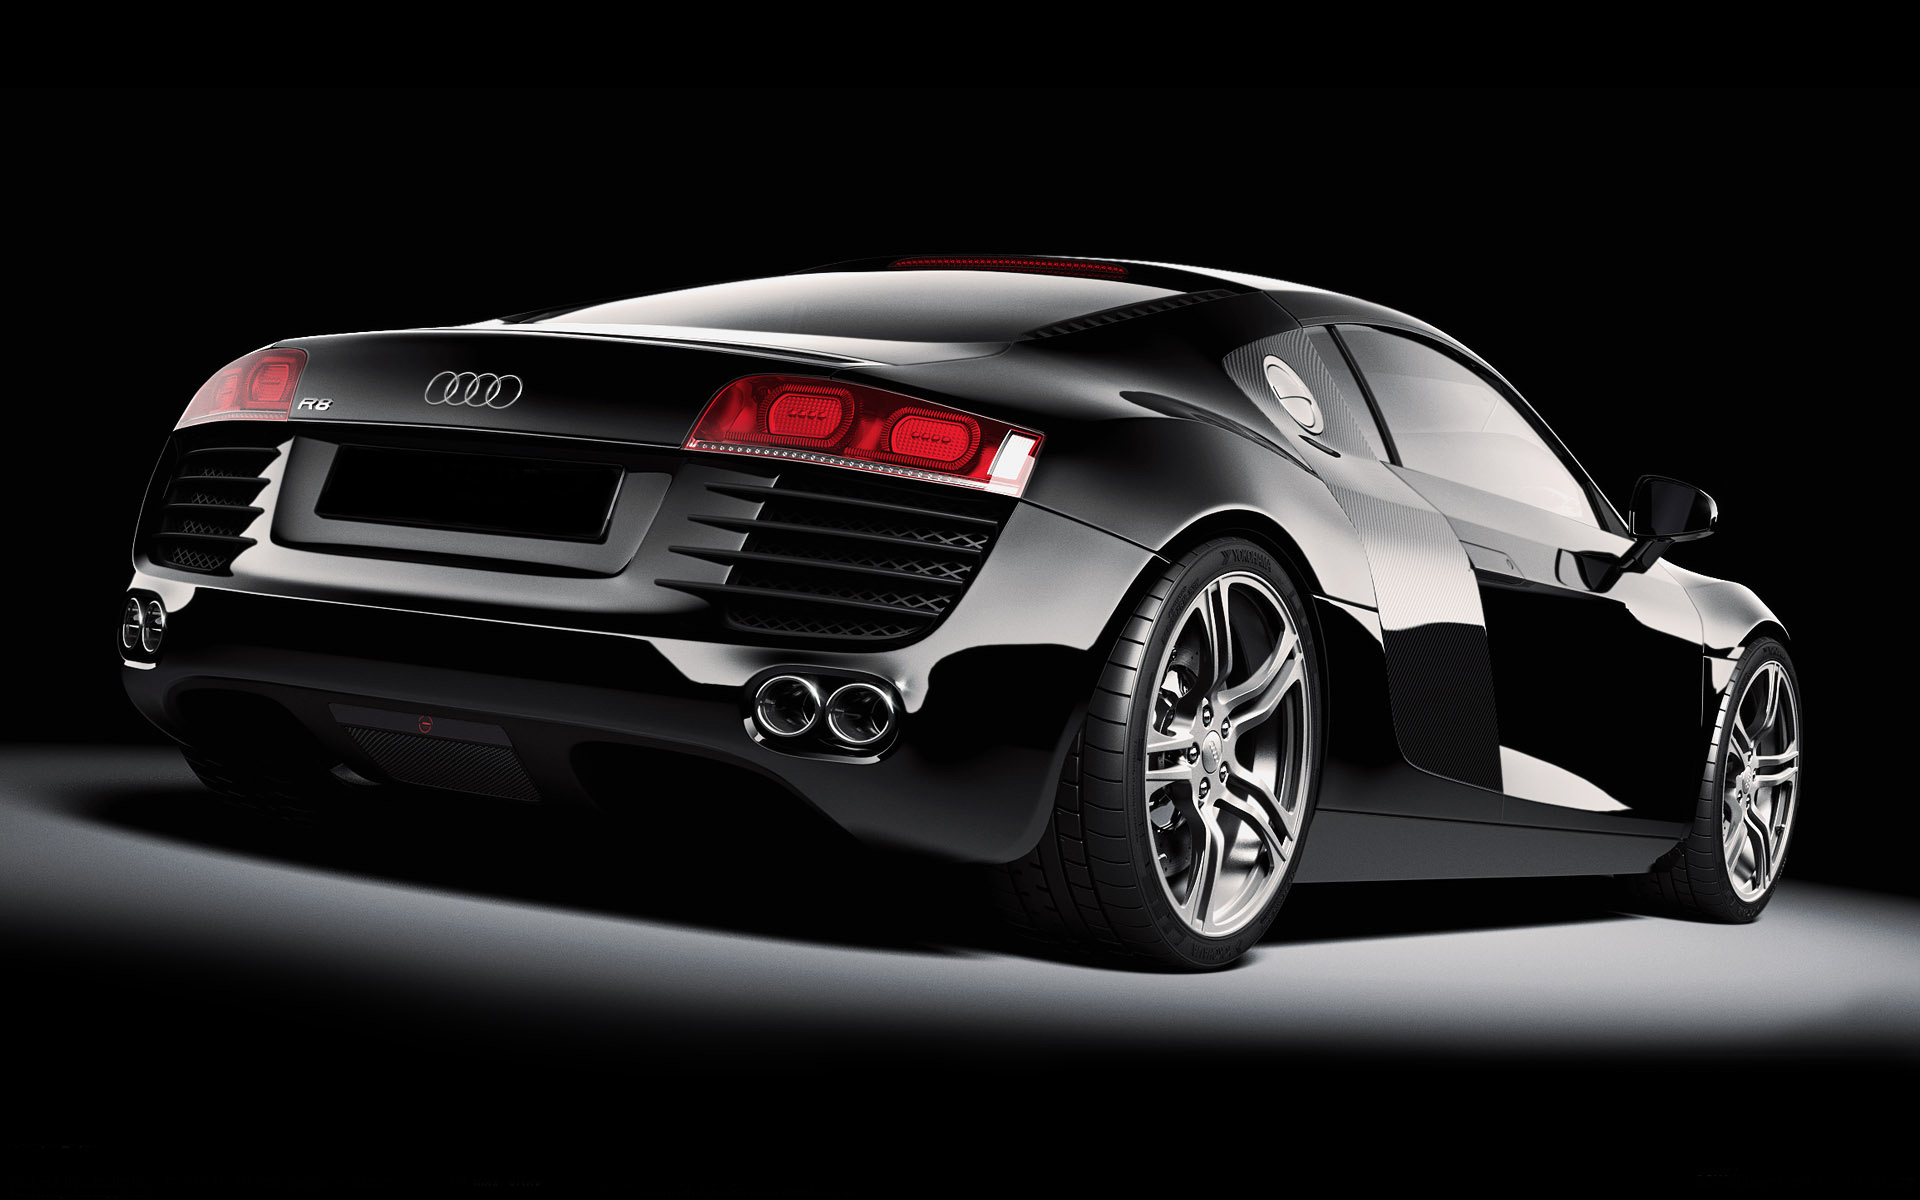 Audi Car Images And Wallpapers The Wow Style